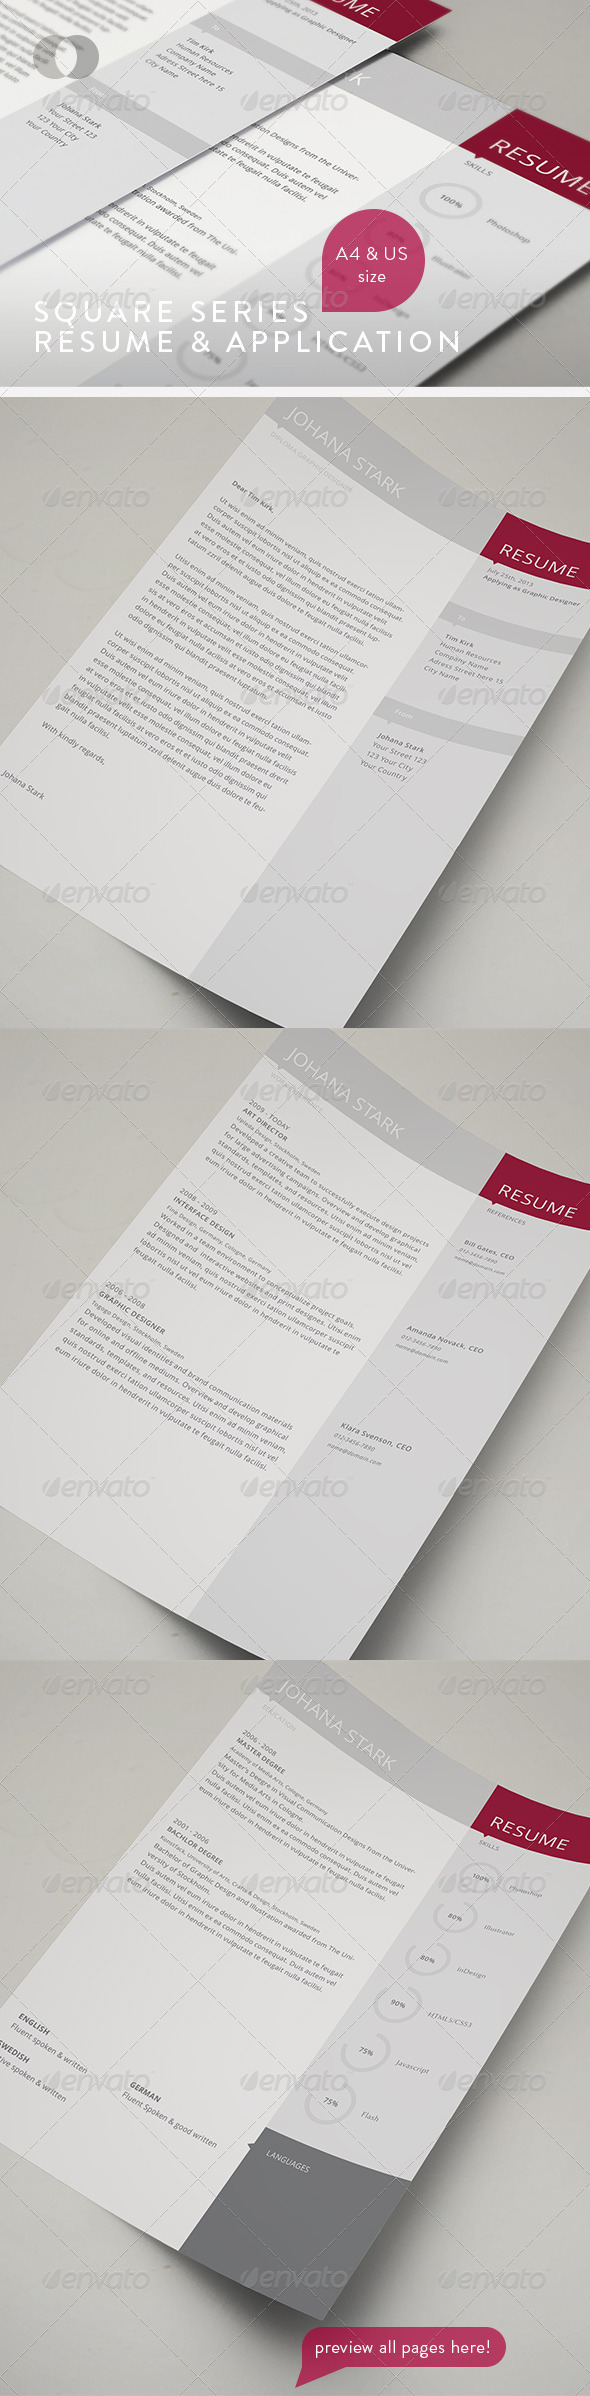 Resume Set - Vol.4 - Resumes Stationery